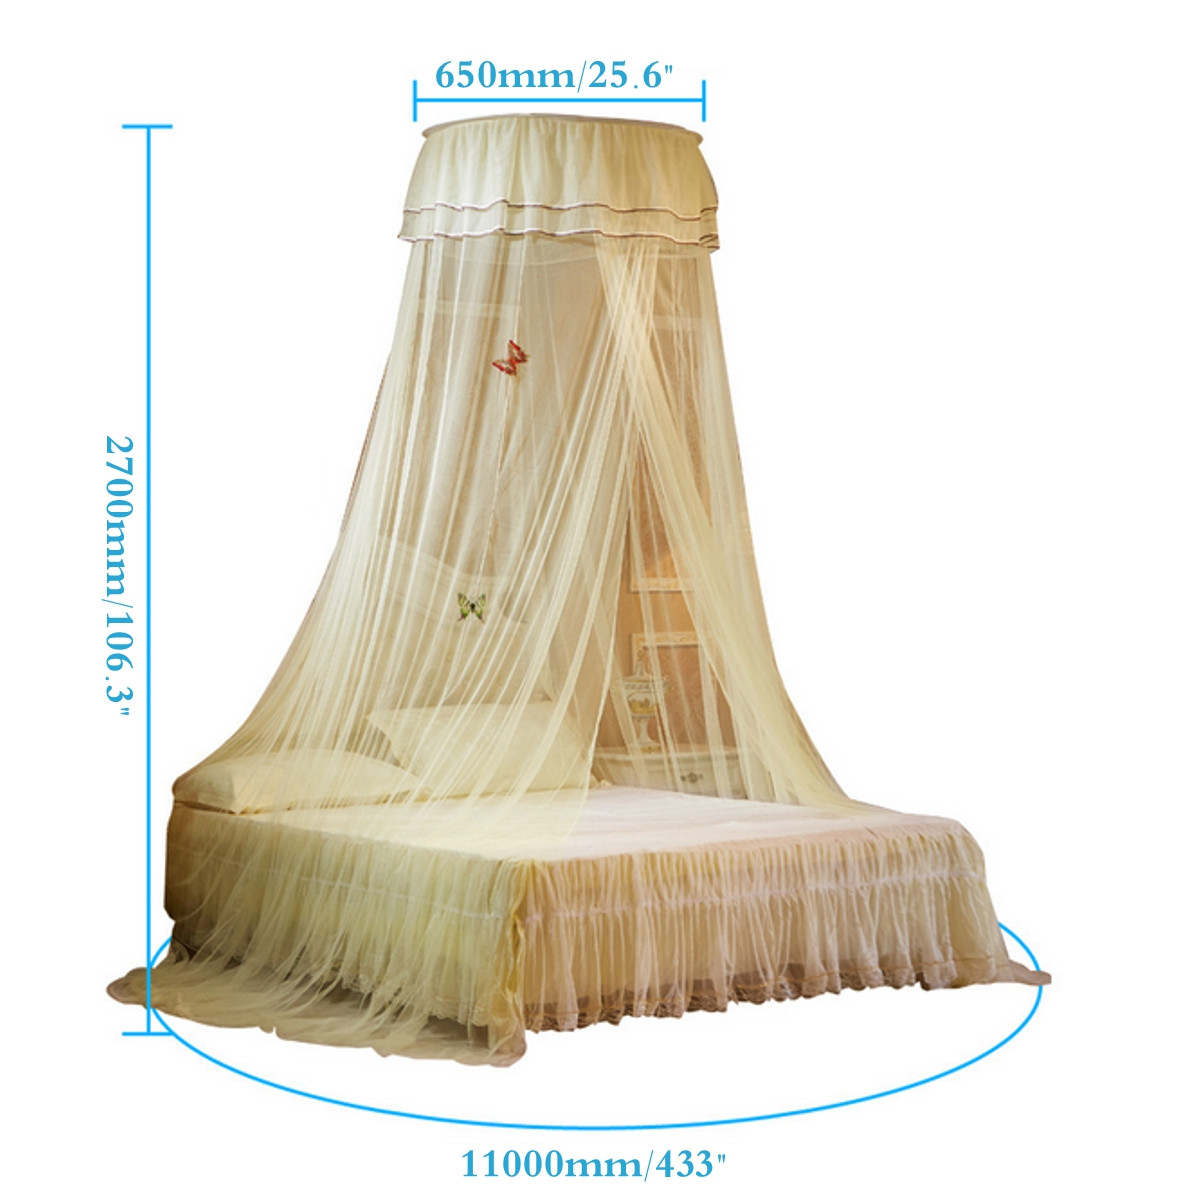 Fly Insect Protection Mosquito Net Bed Canopy Polyester Netting Cover Bed  Outdoor Curtain Dome Adult Canopies